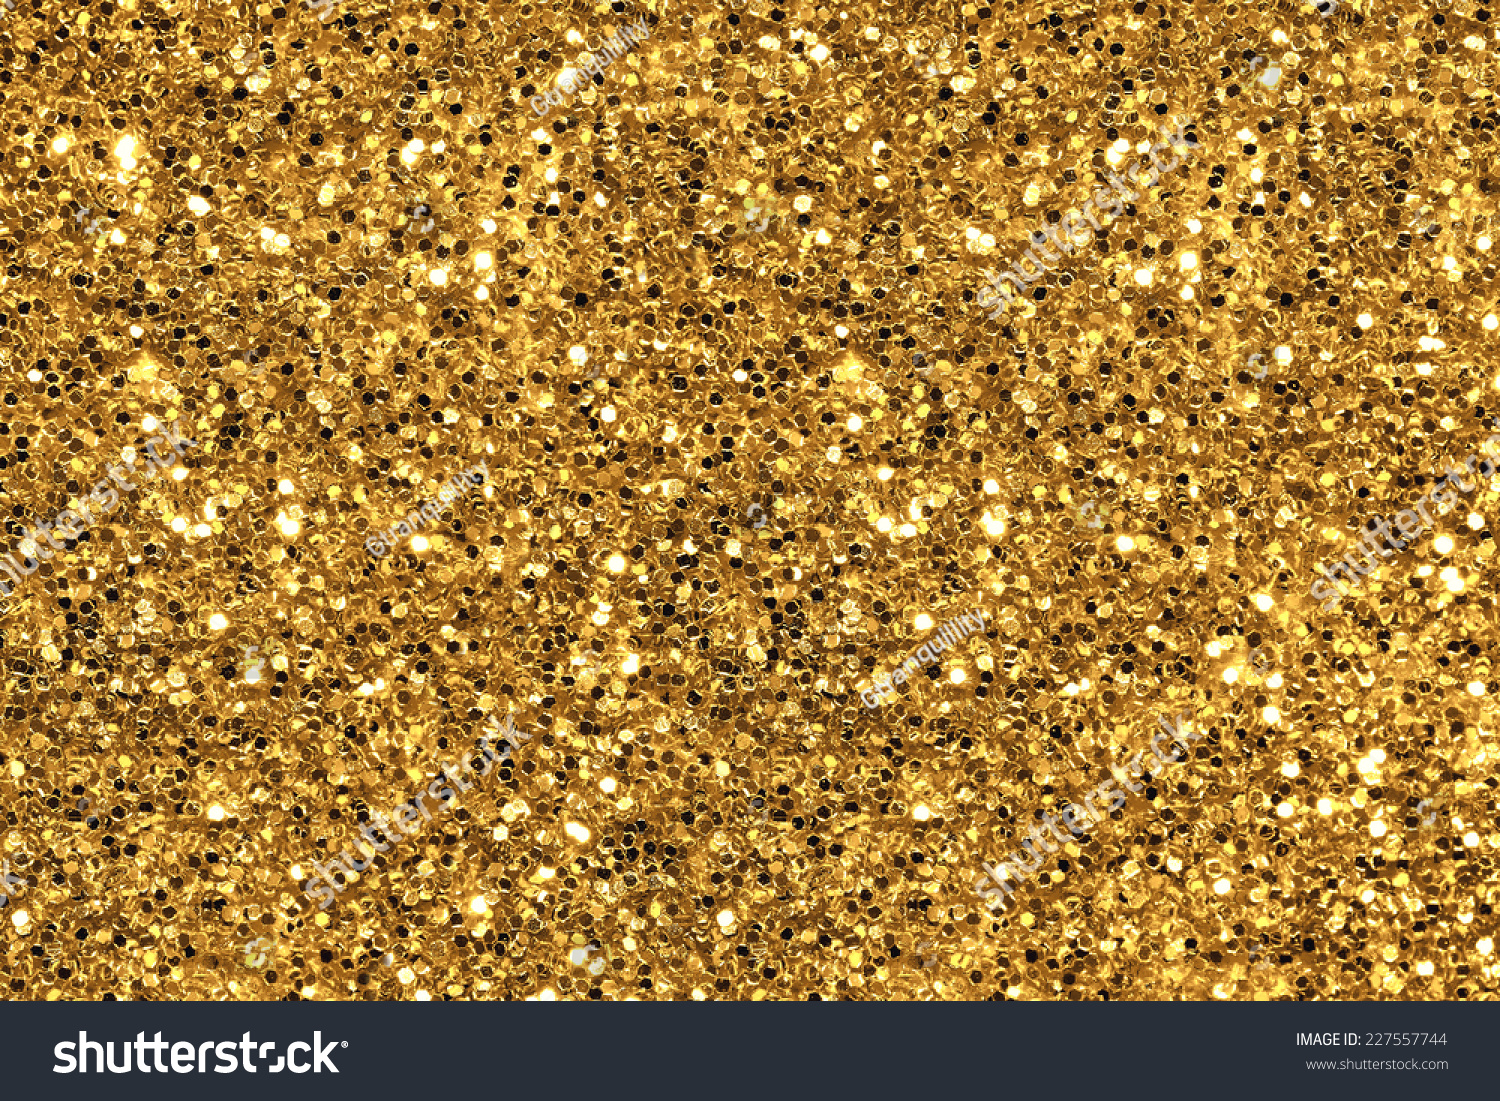 Gold Glitter Background Stock Photo 227557744 - Shutterstock